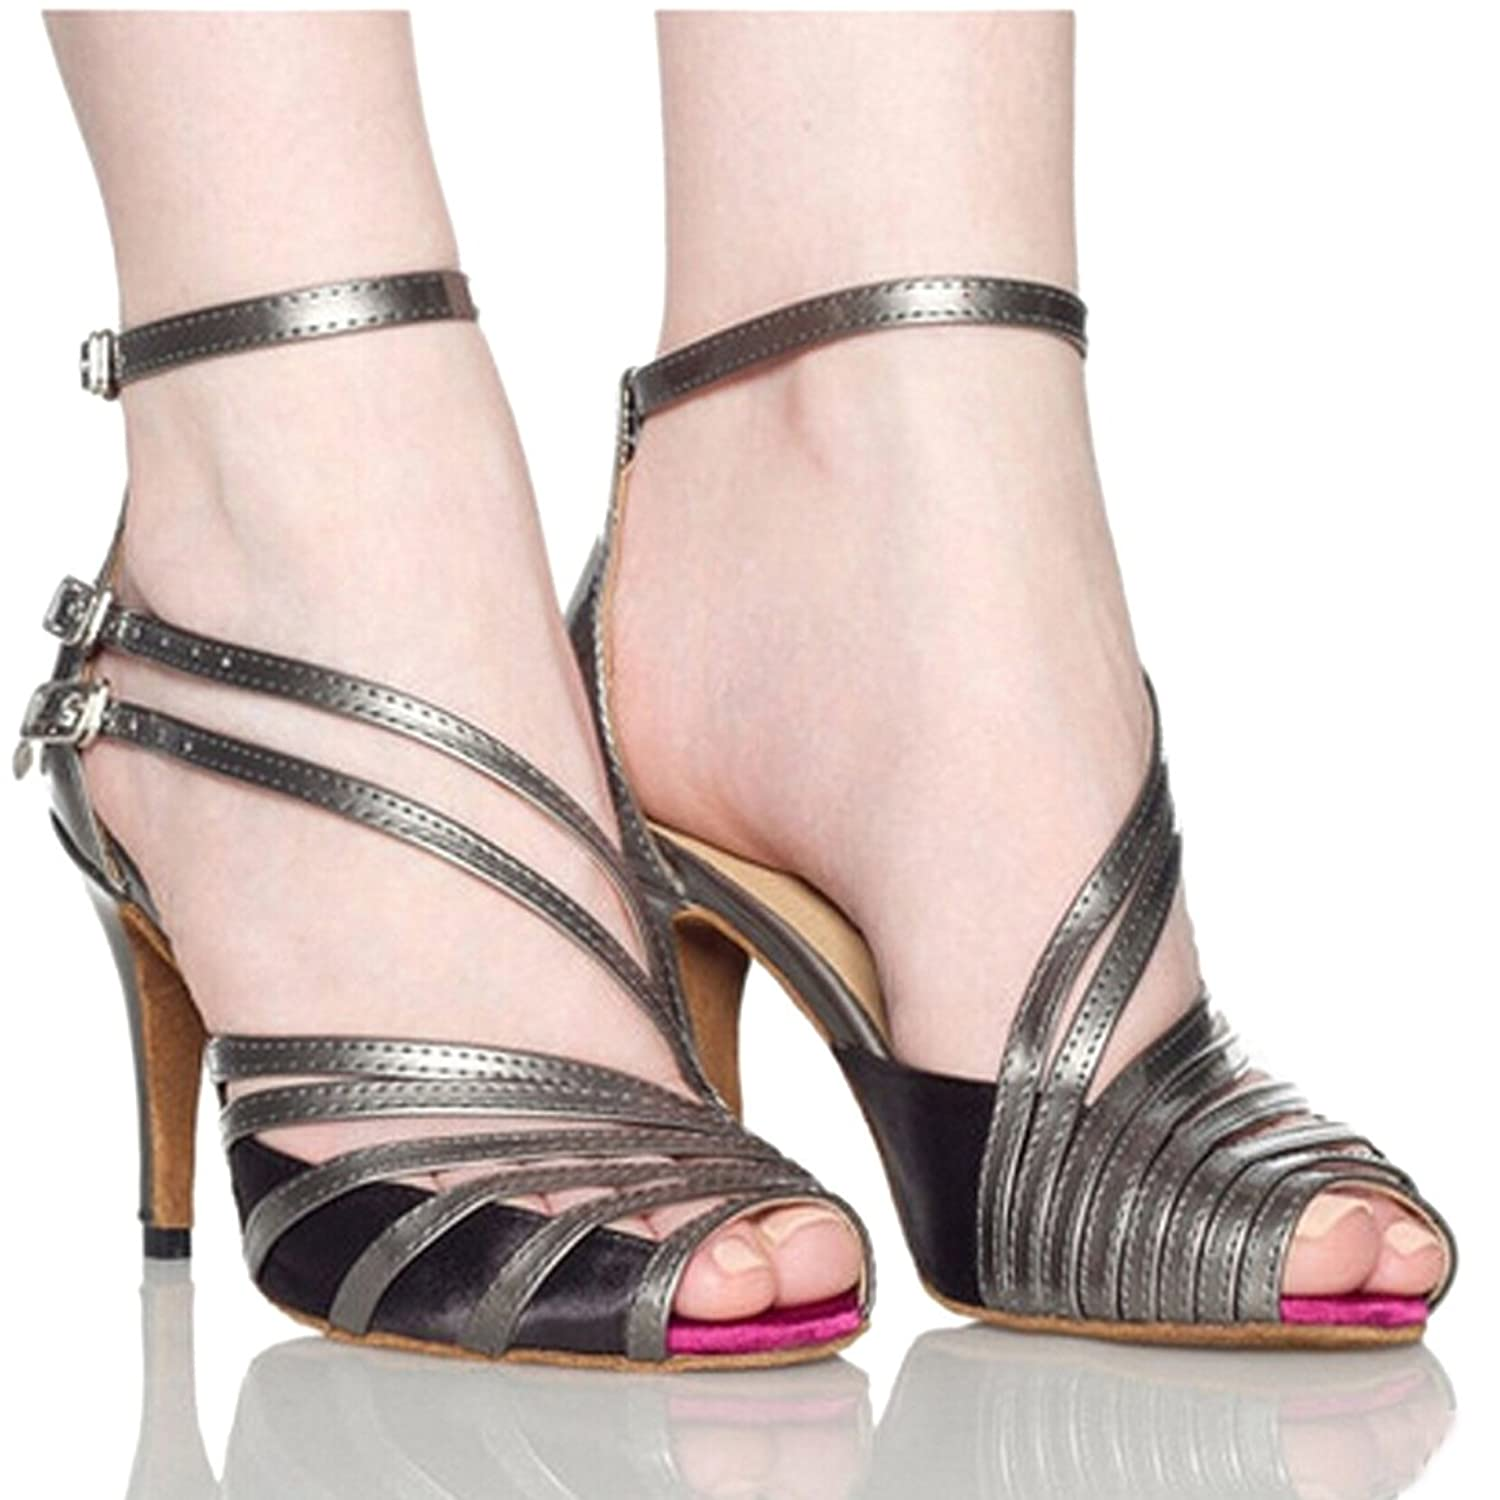 0de28969c91 Made in China.Please purchase by Seller s size chart ( Please choose the  size according to the Centimeters) Two High heel 6cm(2.36